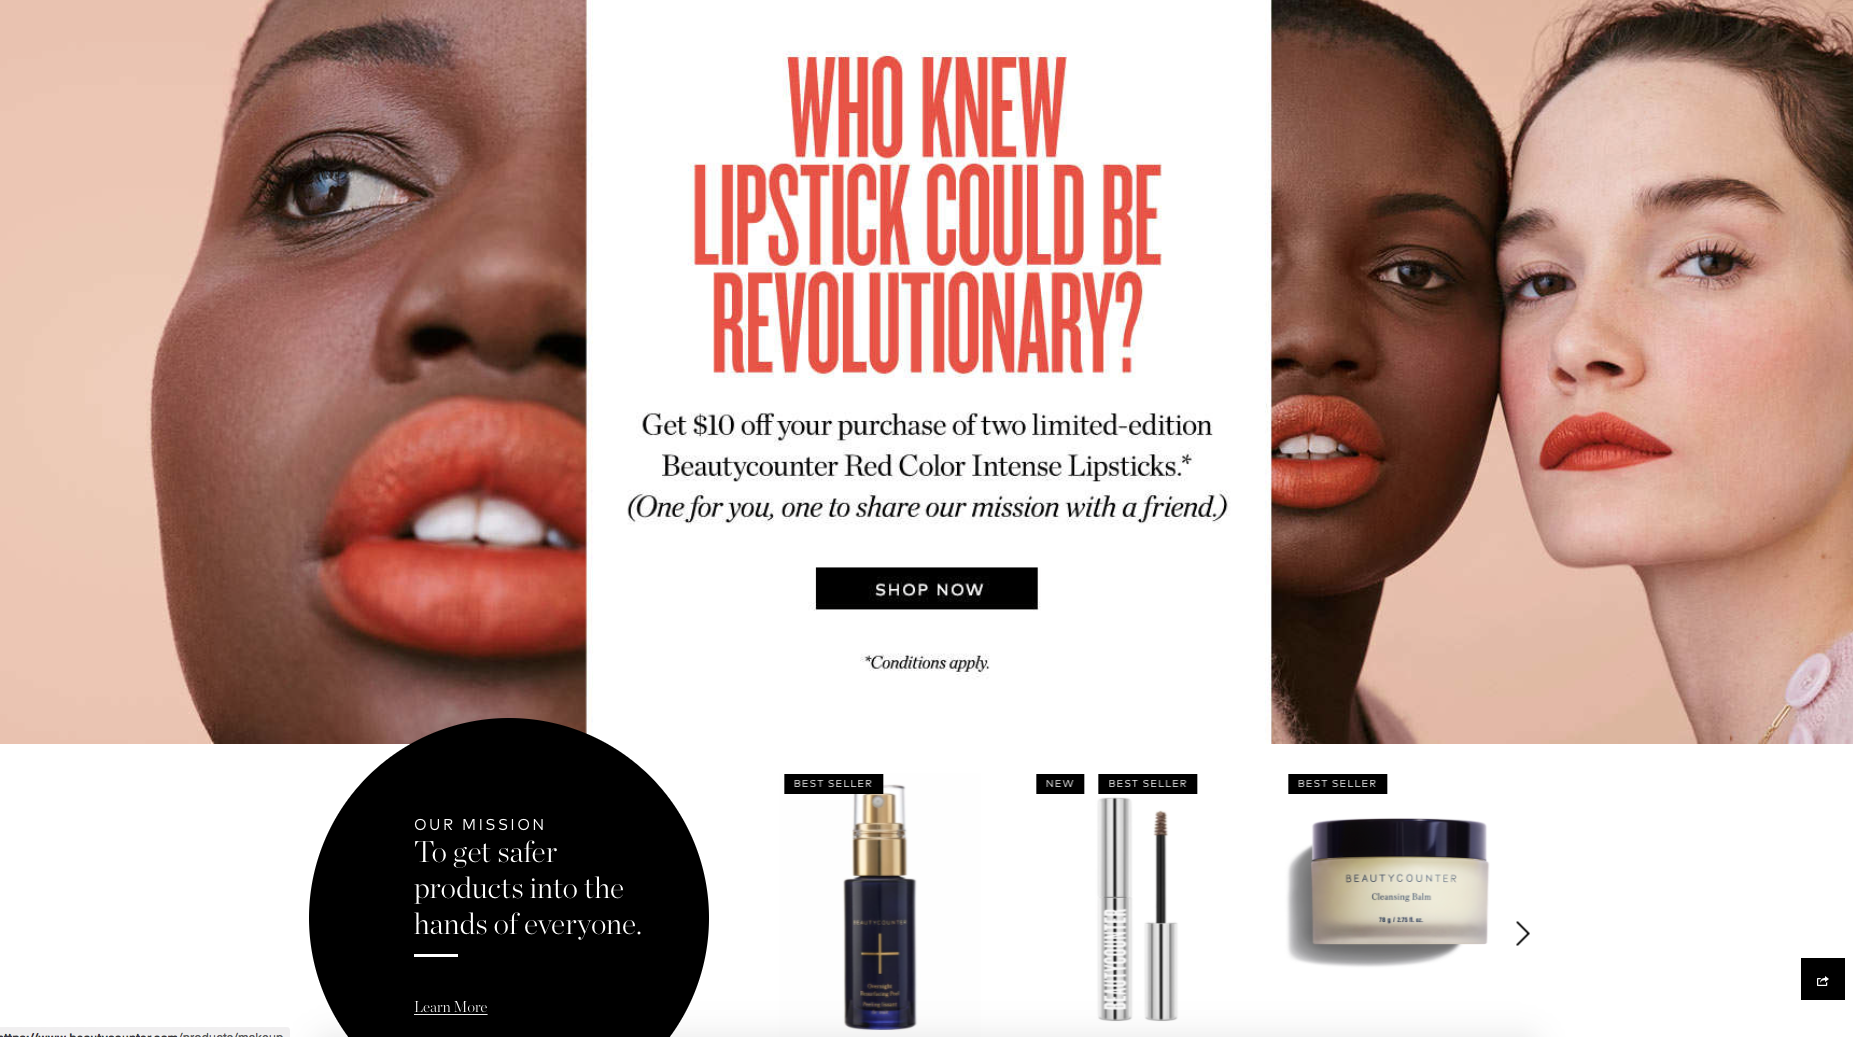 Click on the image to learn more! And how perfect they are featuring my  THREE FAVORITE PRODUCTS!